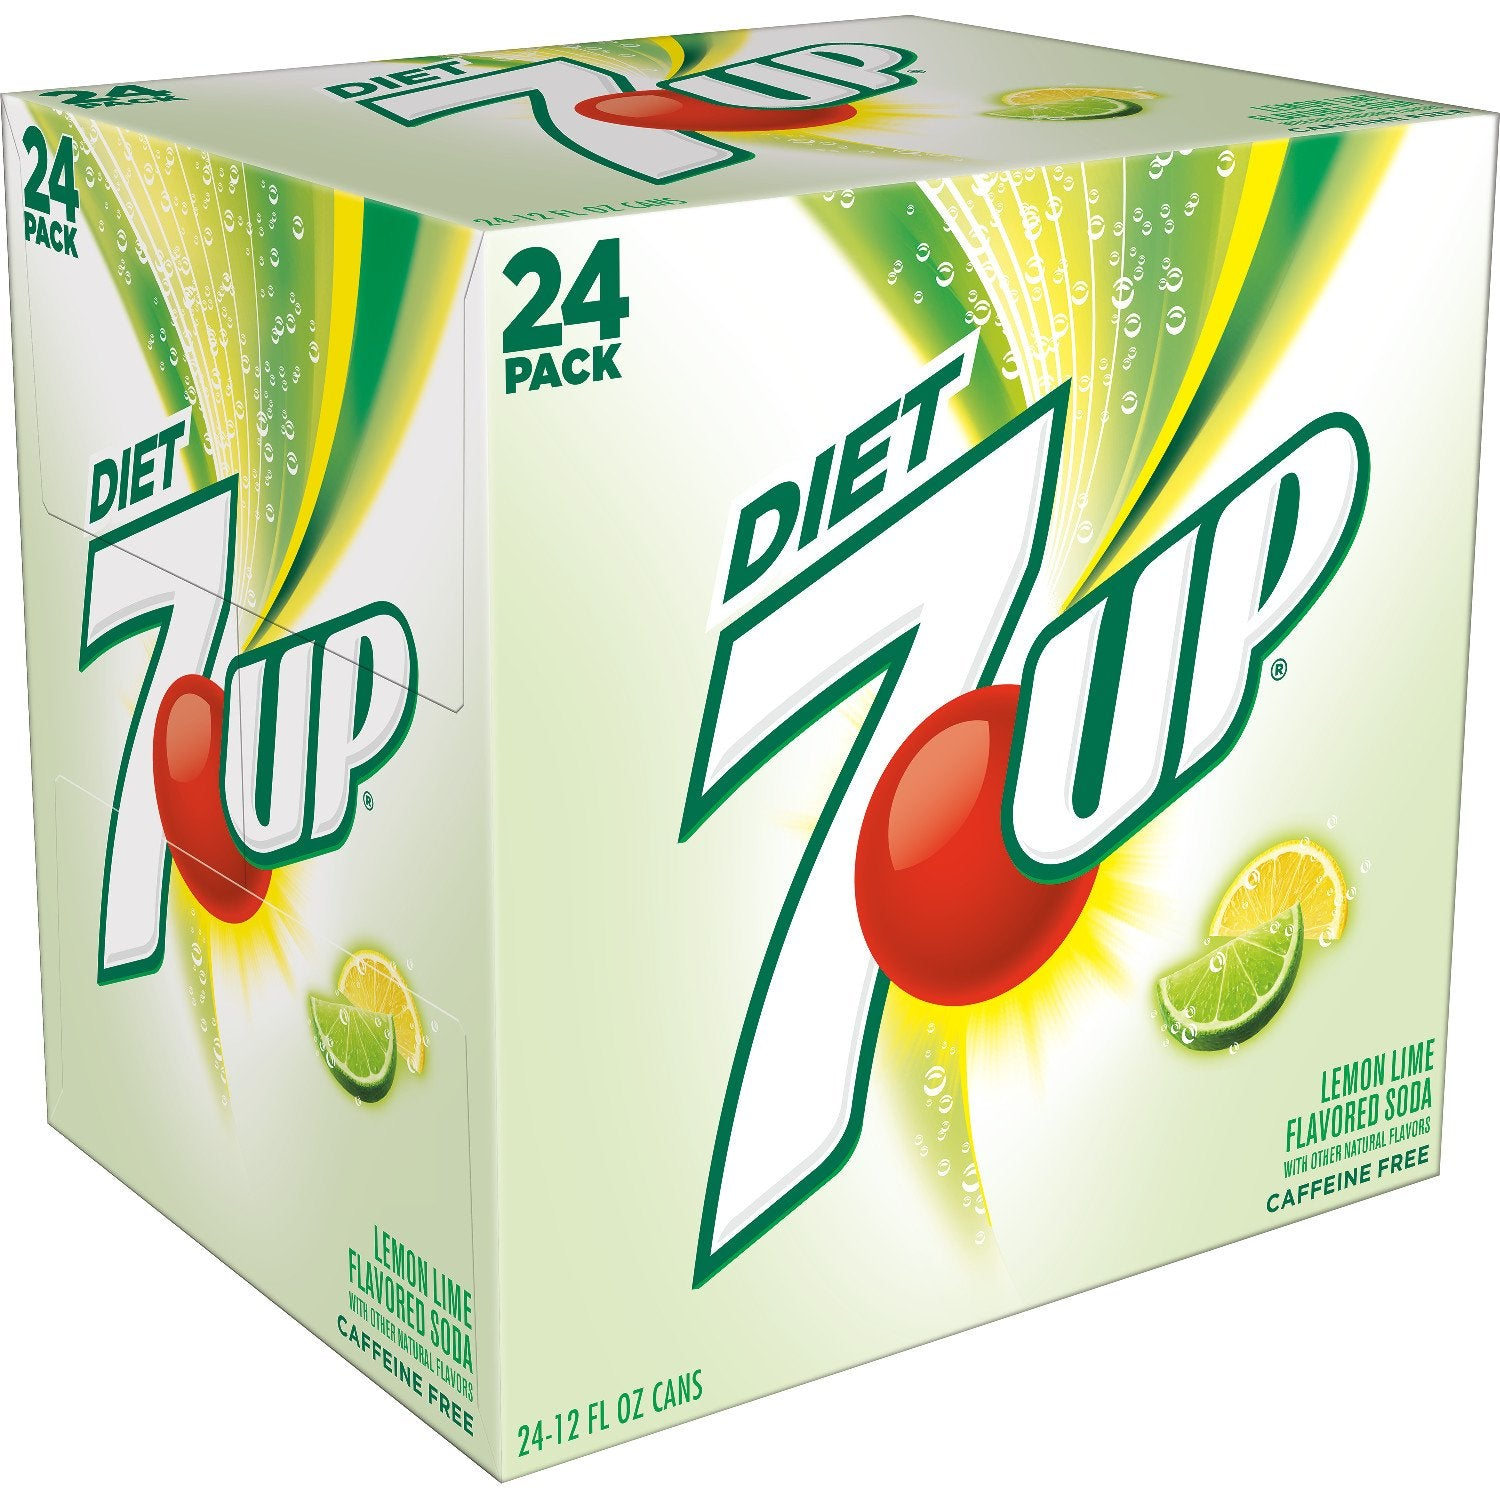 stl>7-Up Diet - 24 Pack